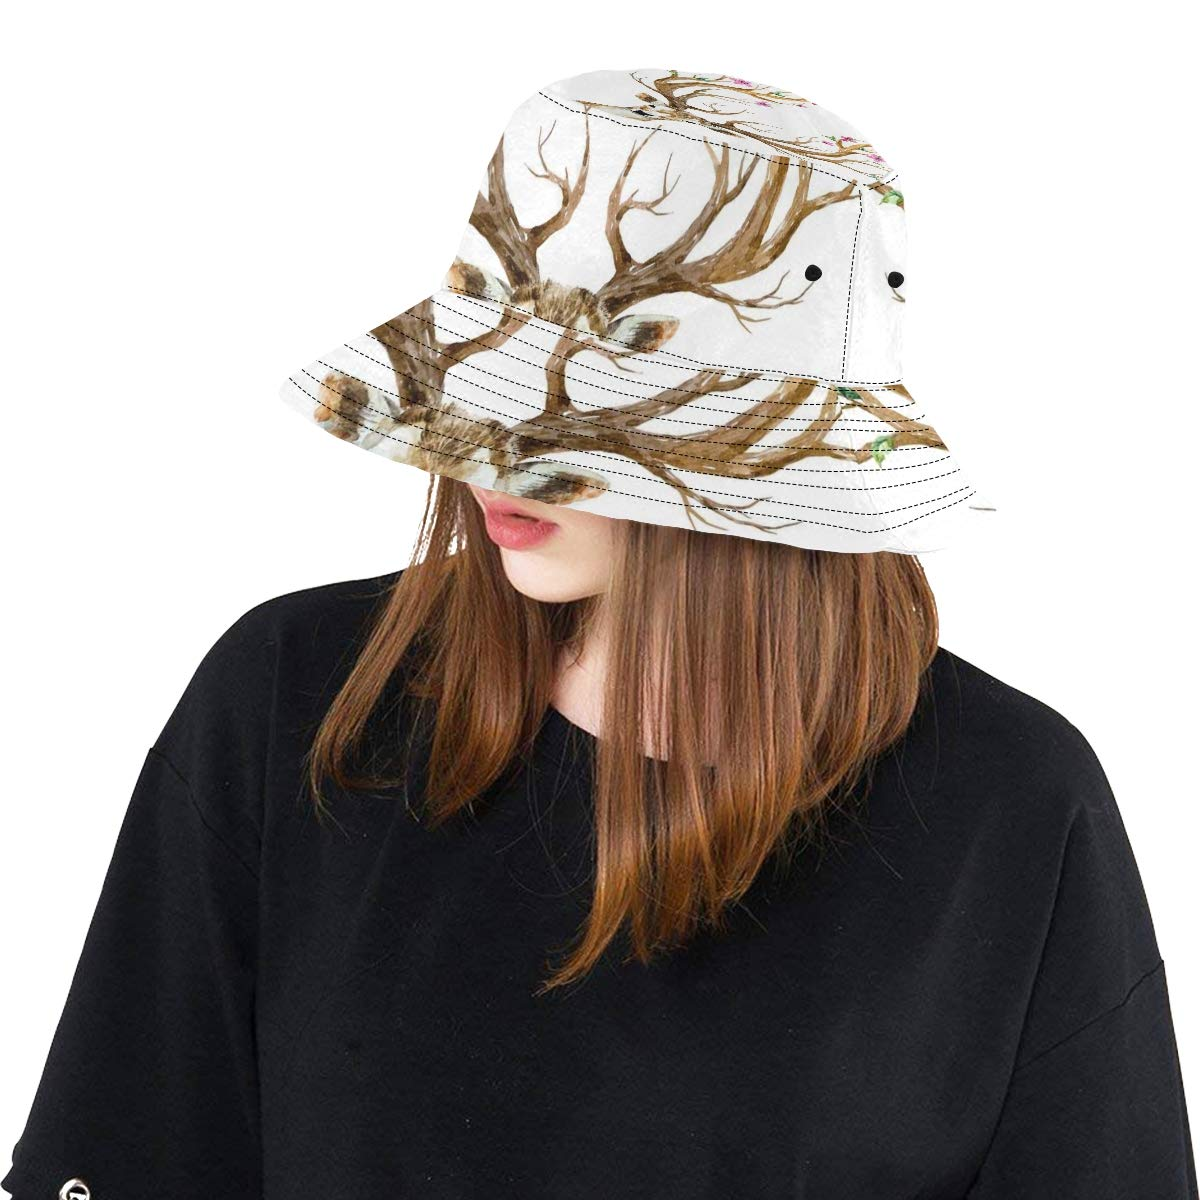 Powerful Wild Deer New Summer Unisex Cotton Fashion Fishing Sun Bucket Hats for Kid Teens Women and Men with Customize Top Packable Fisherman Cap for Outdoor Travel